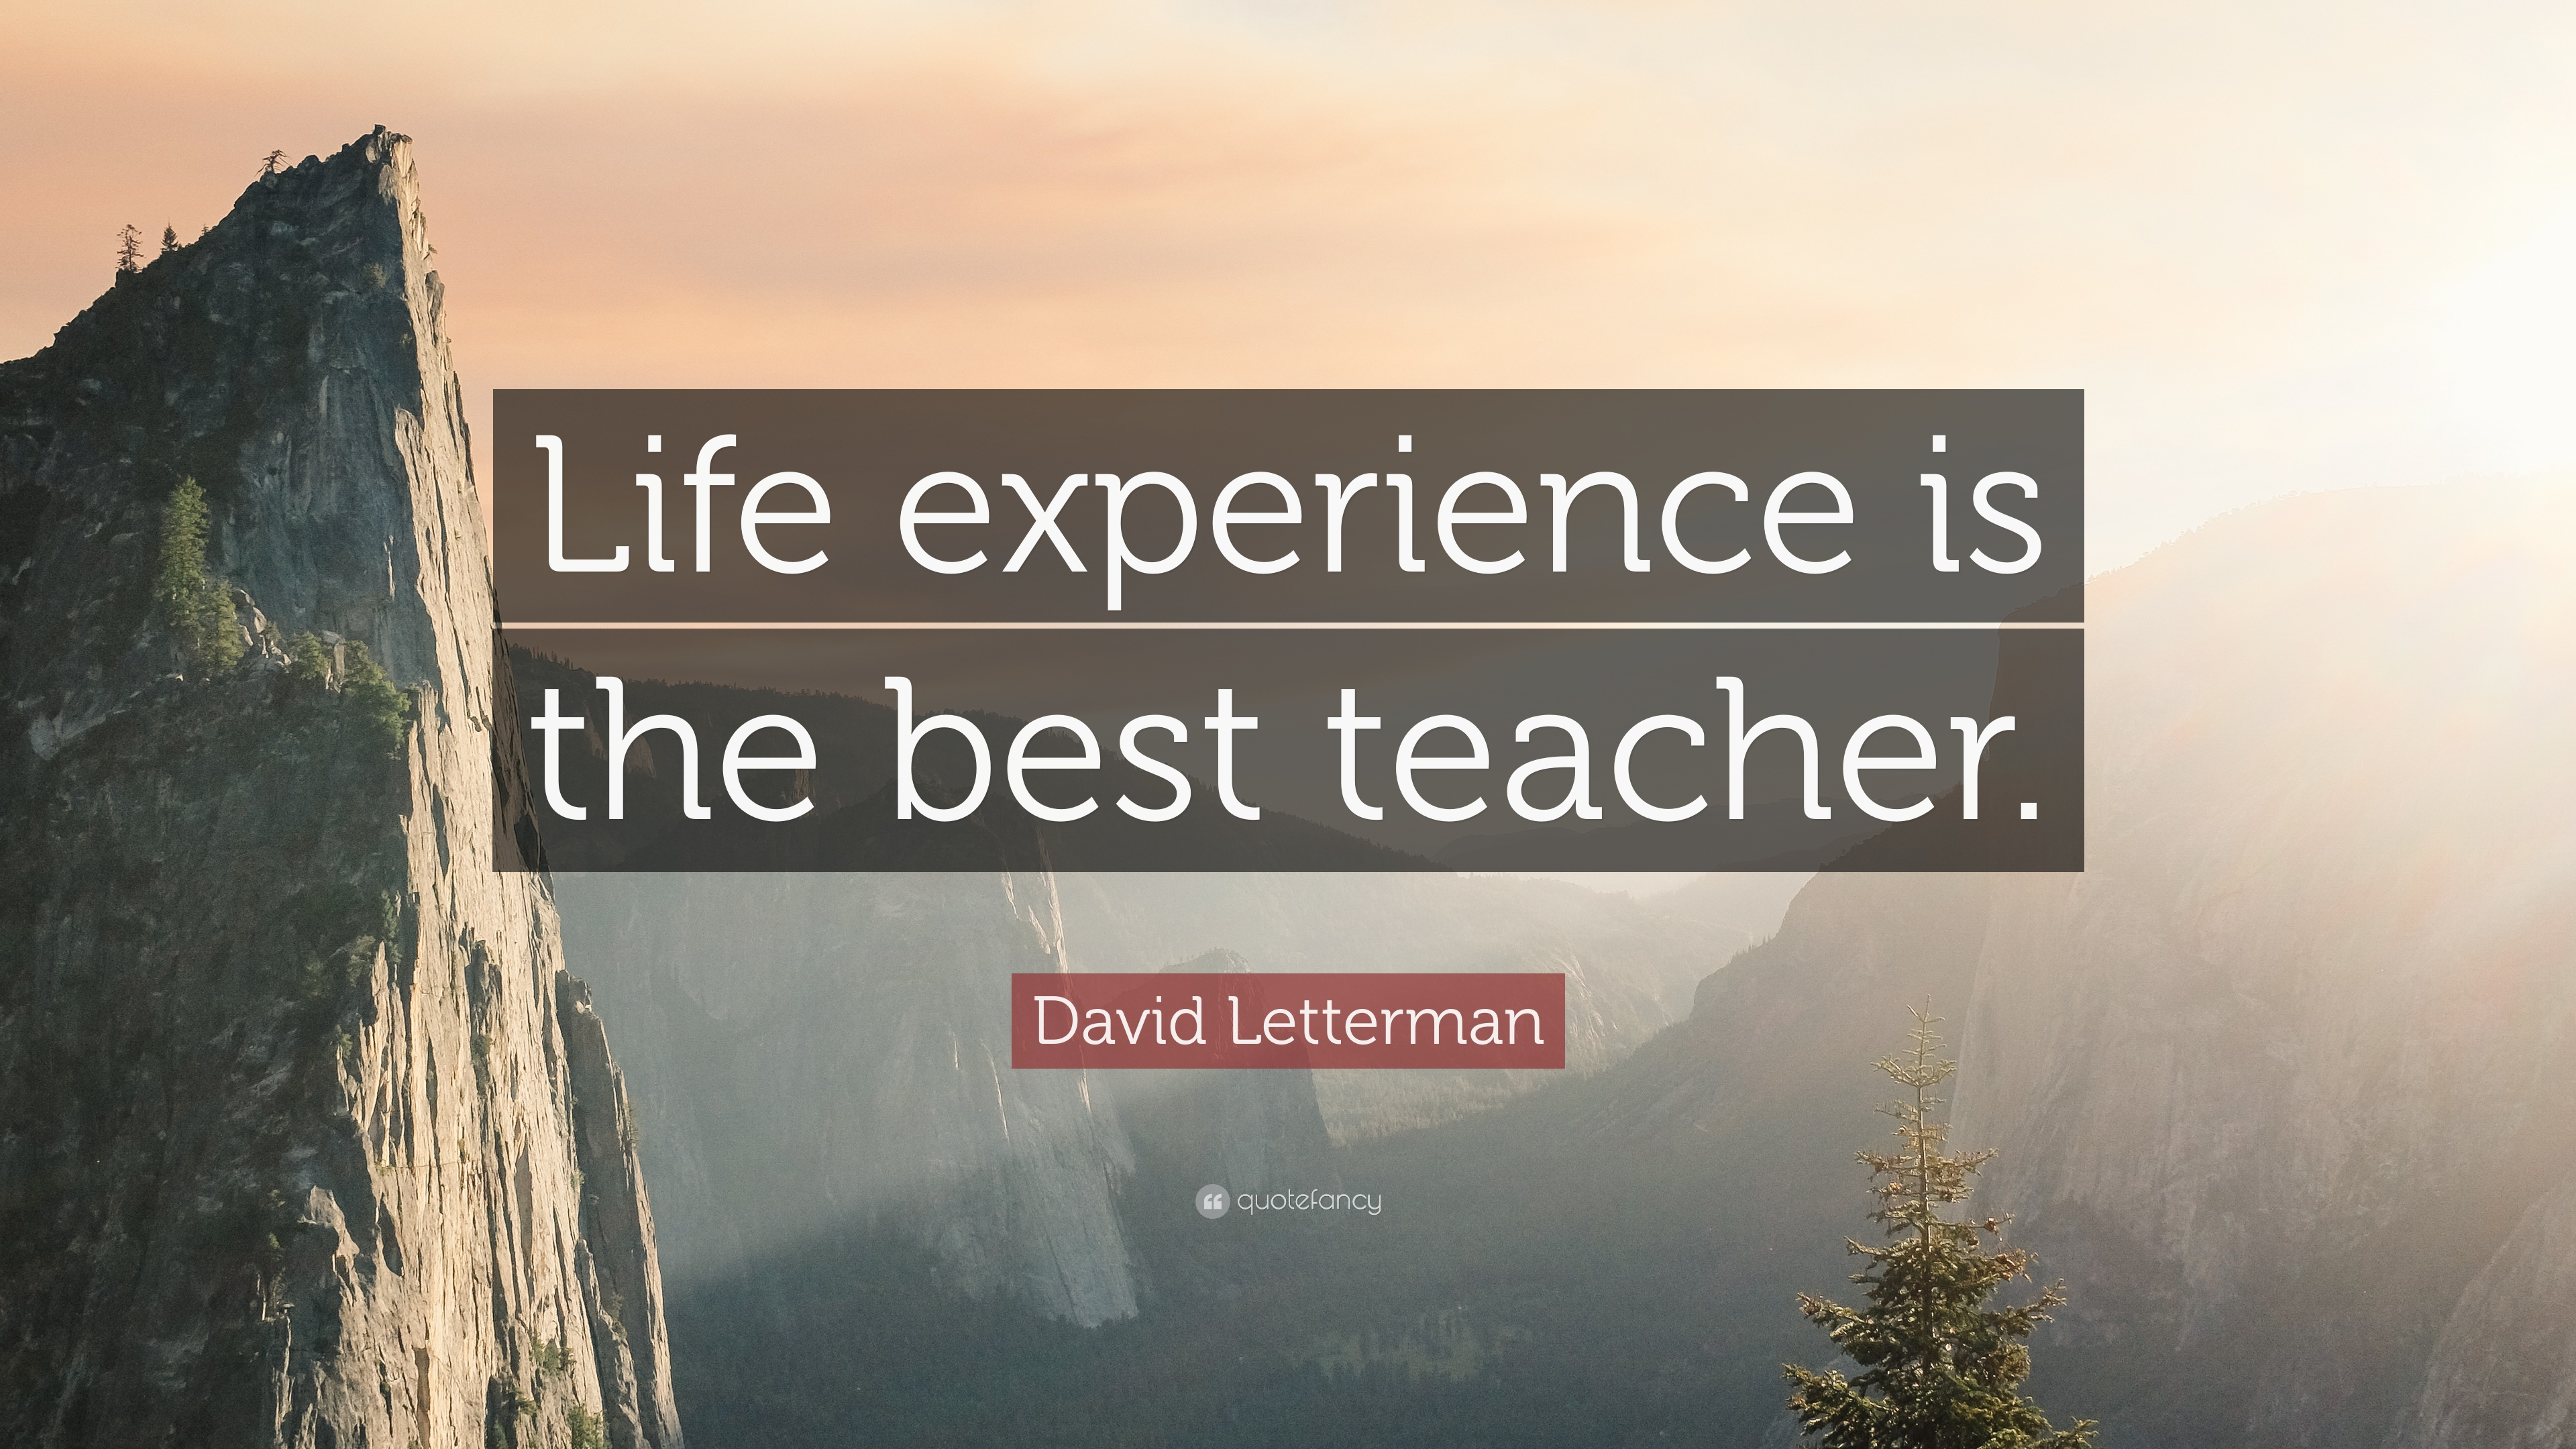 David Letterman Quote Life Experience Is The Best Teacher 10